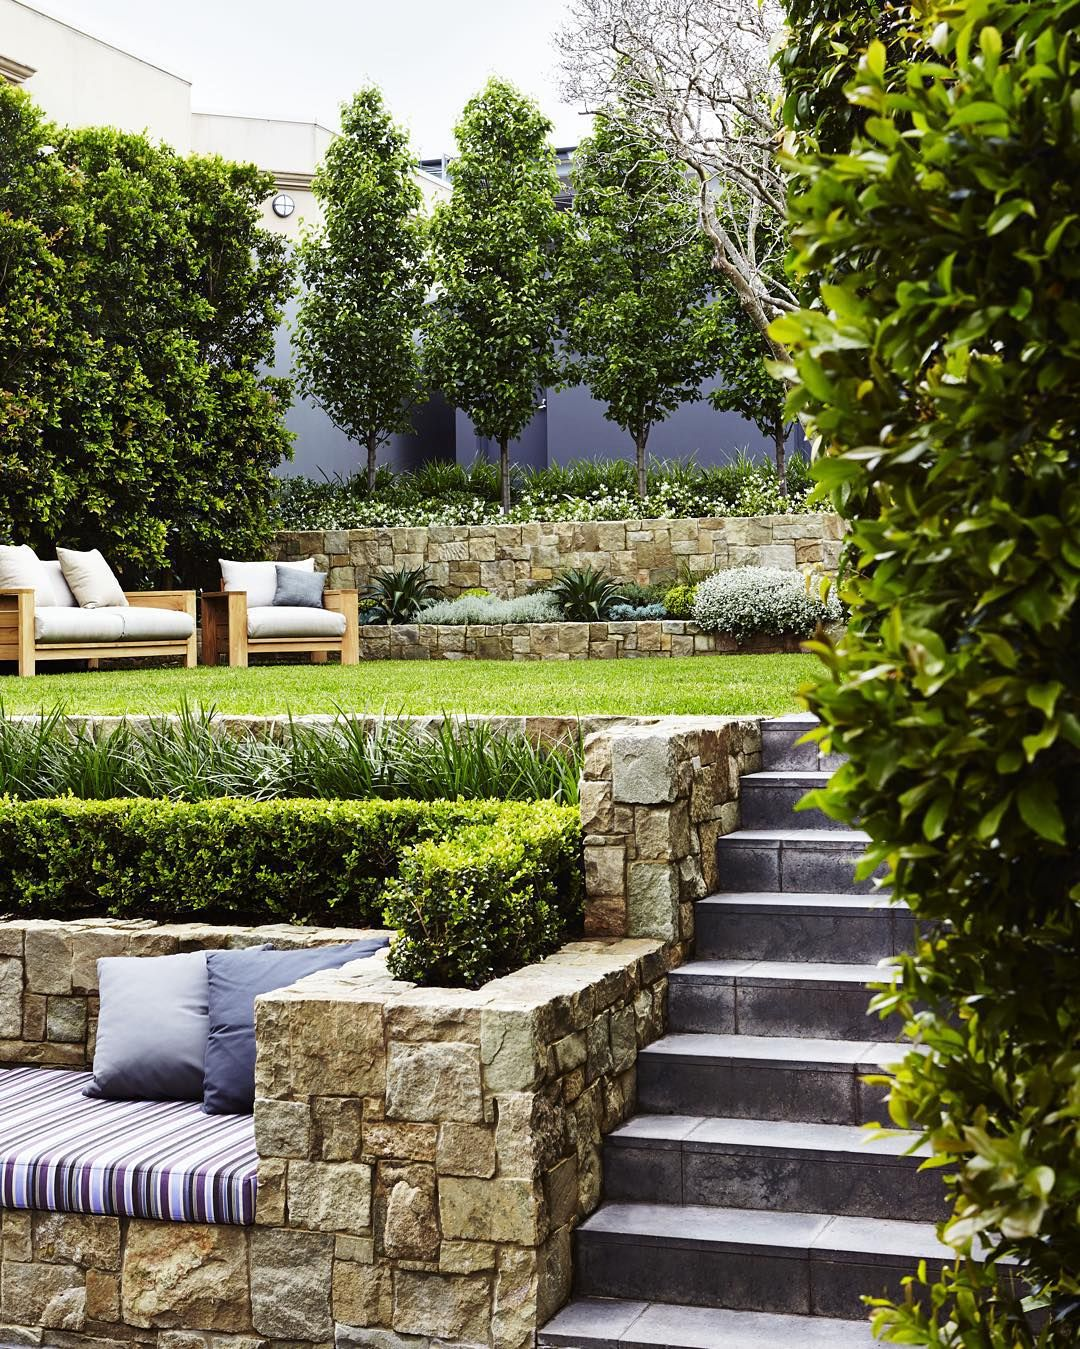 gardens landscapes pools outdoorestablishments instagram photos and videos